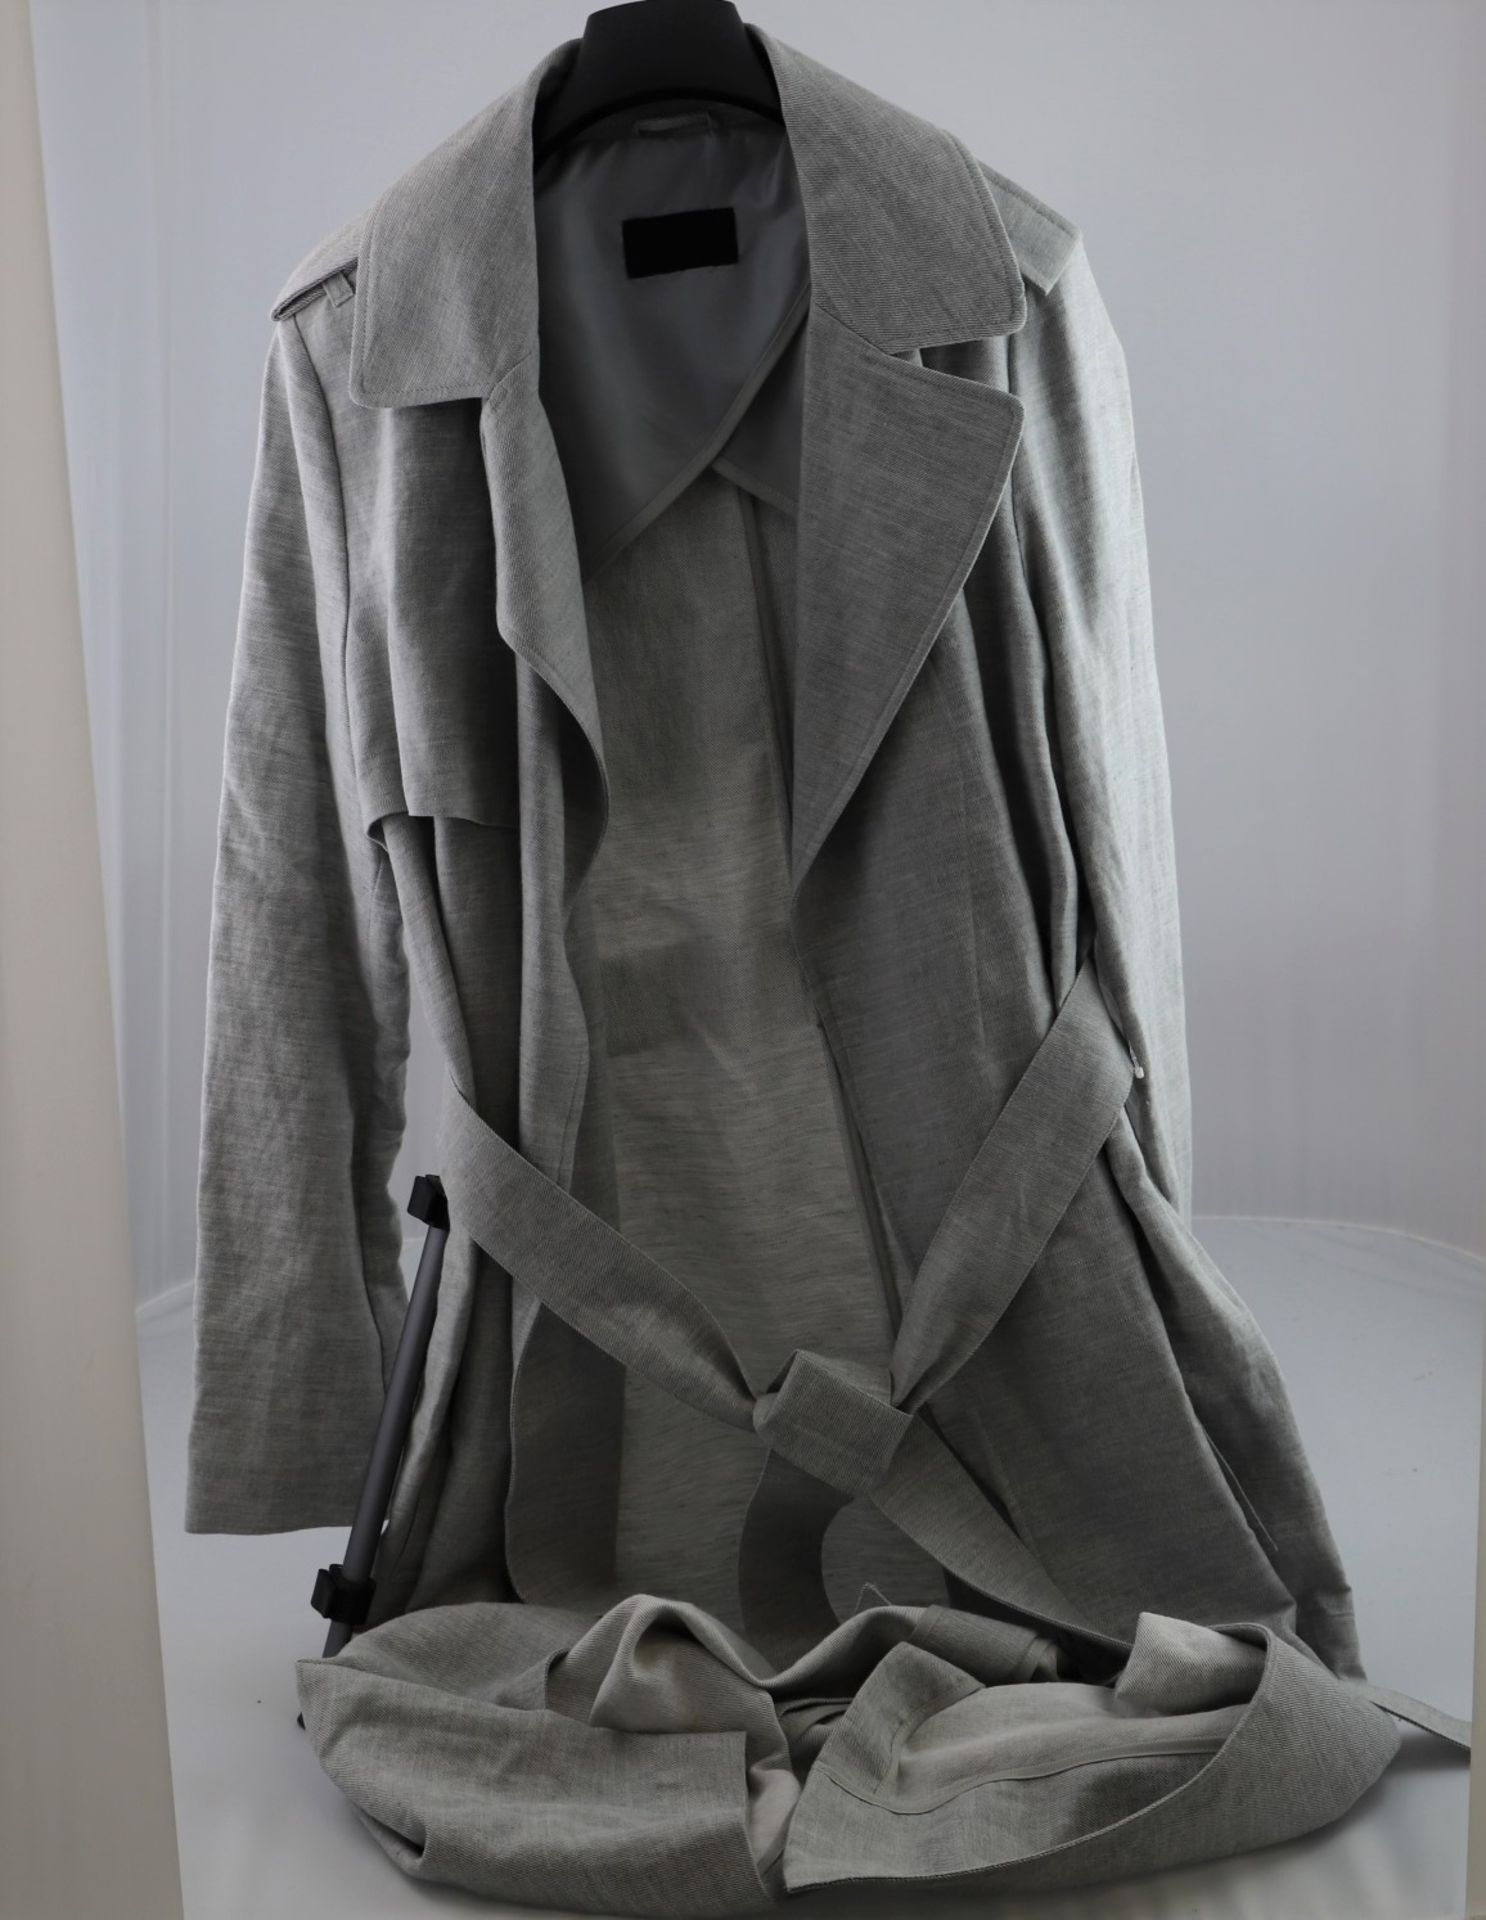 1 x mixed pallet = 478 items of Grade A M&S Womenswear Clothing. Total RRP £6947.50 - Image 6 of 9